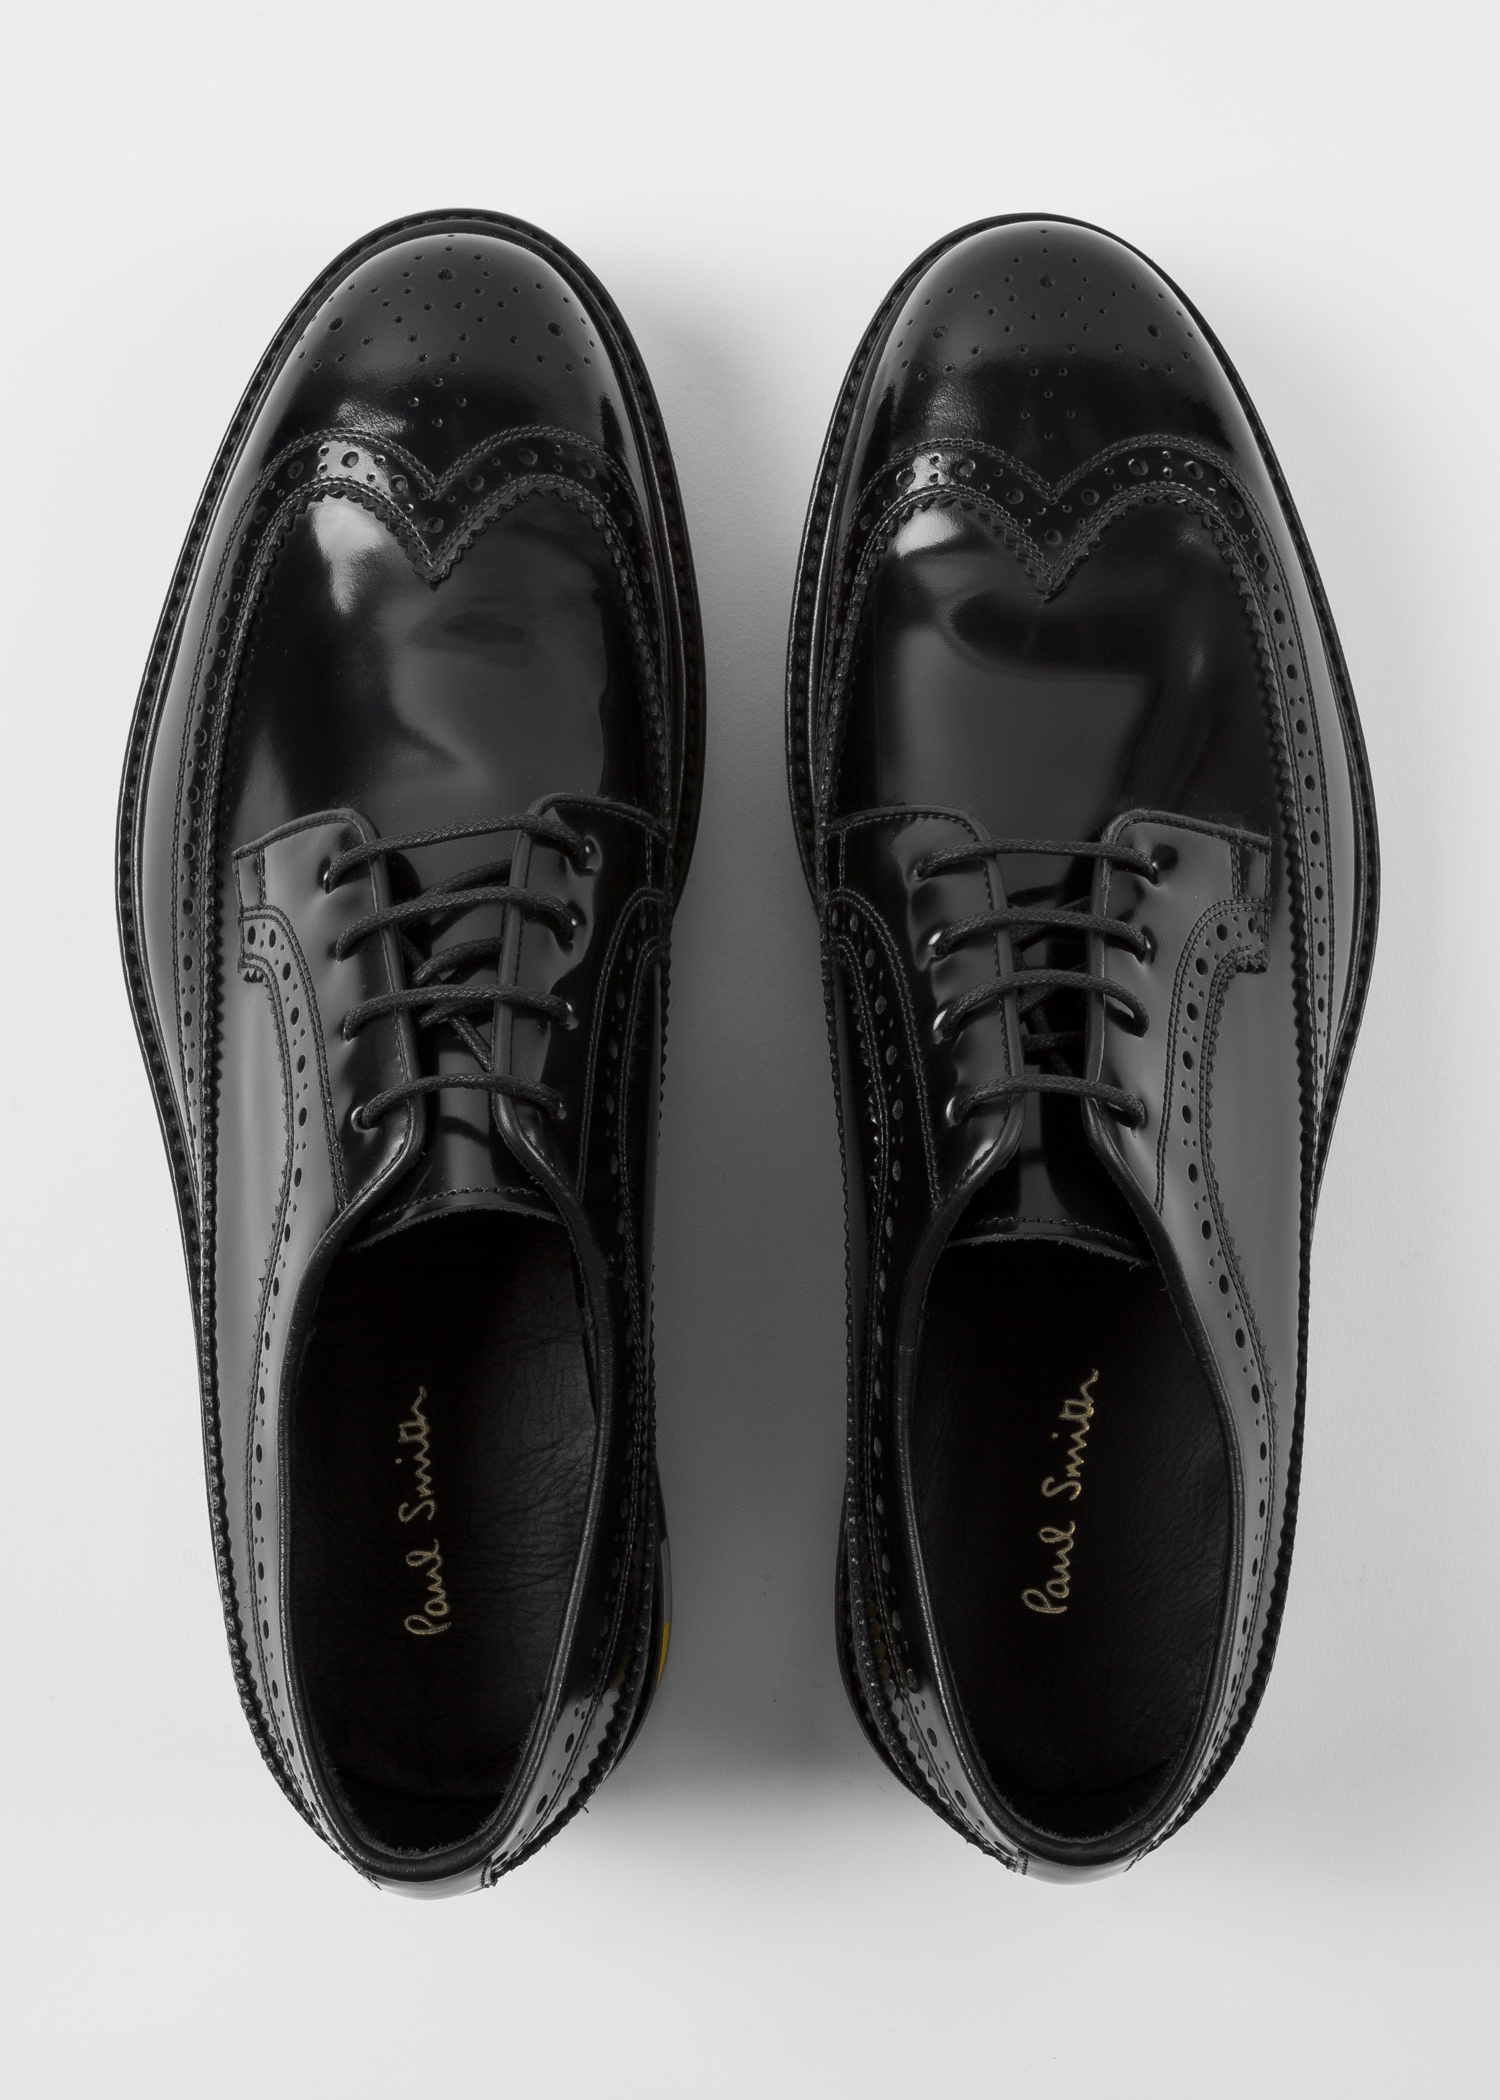 ec099a0cf0 Front view - Men's Black Patent 'Grand' Brogues With Striped Soles Paul  Smith